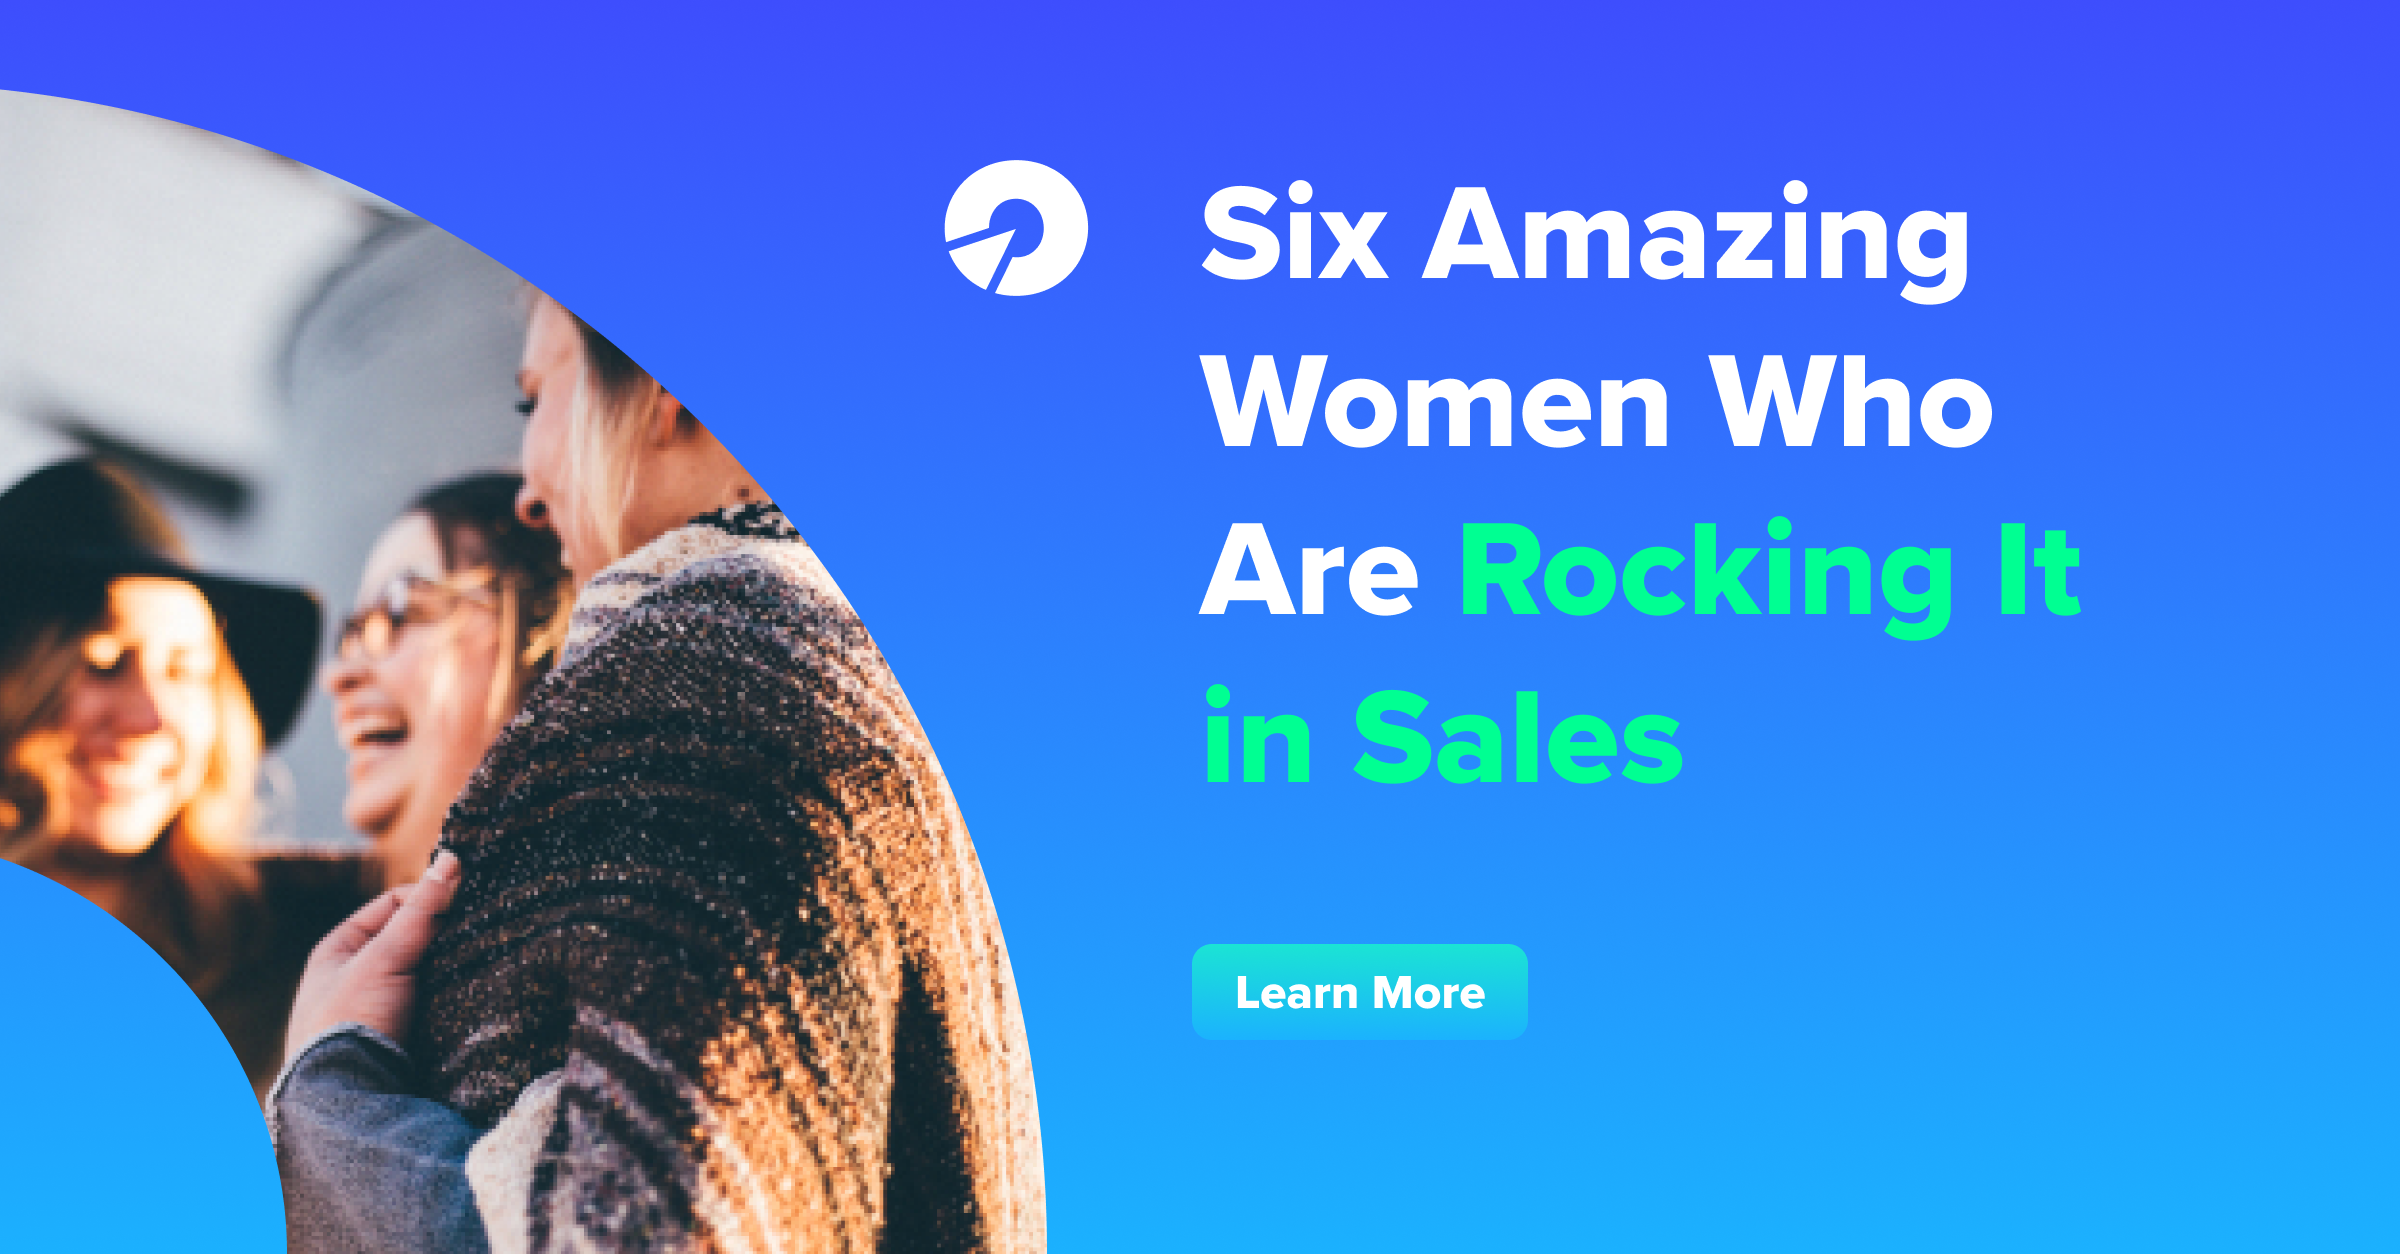 Six Amazing Women Who Are Rocking It in Sales